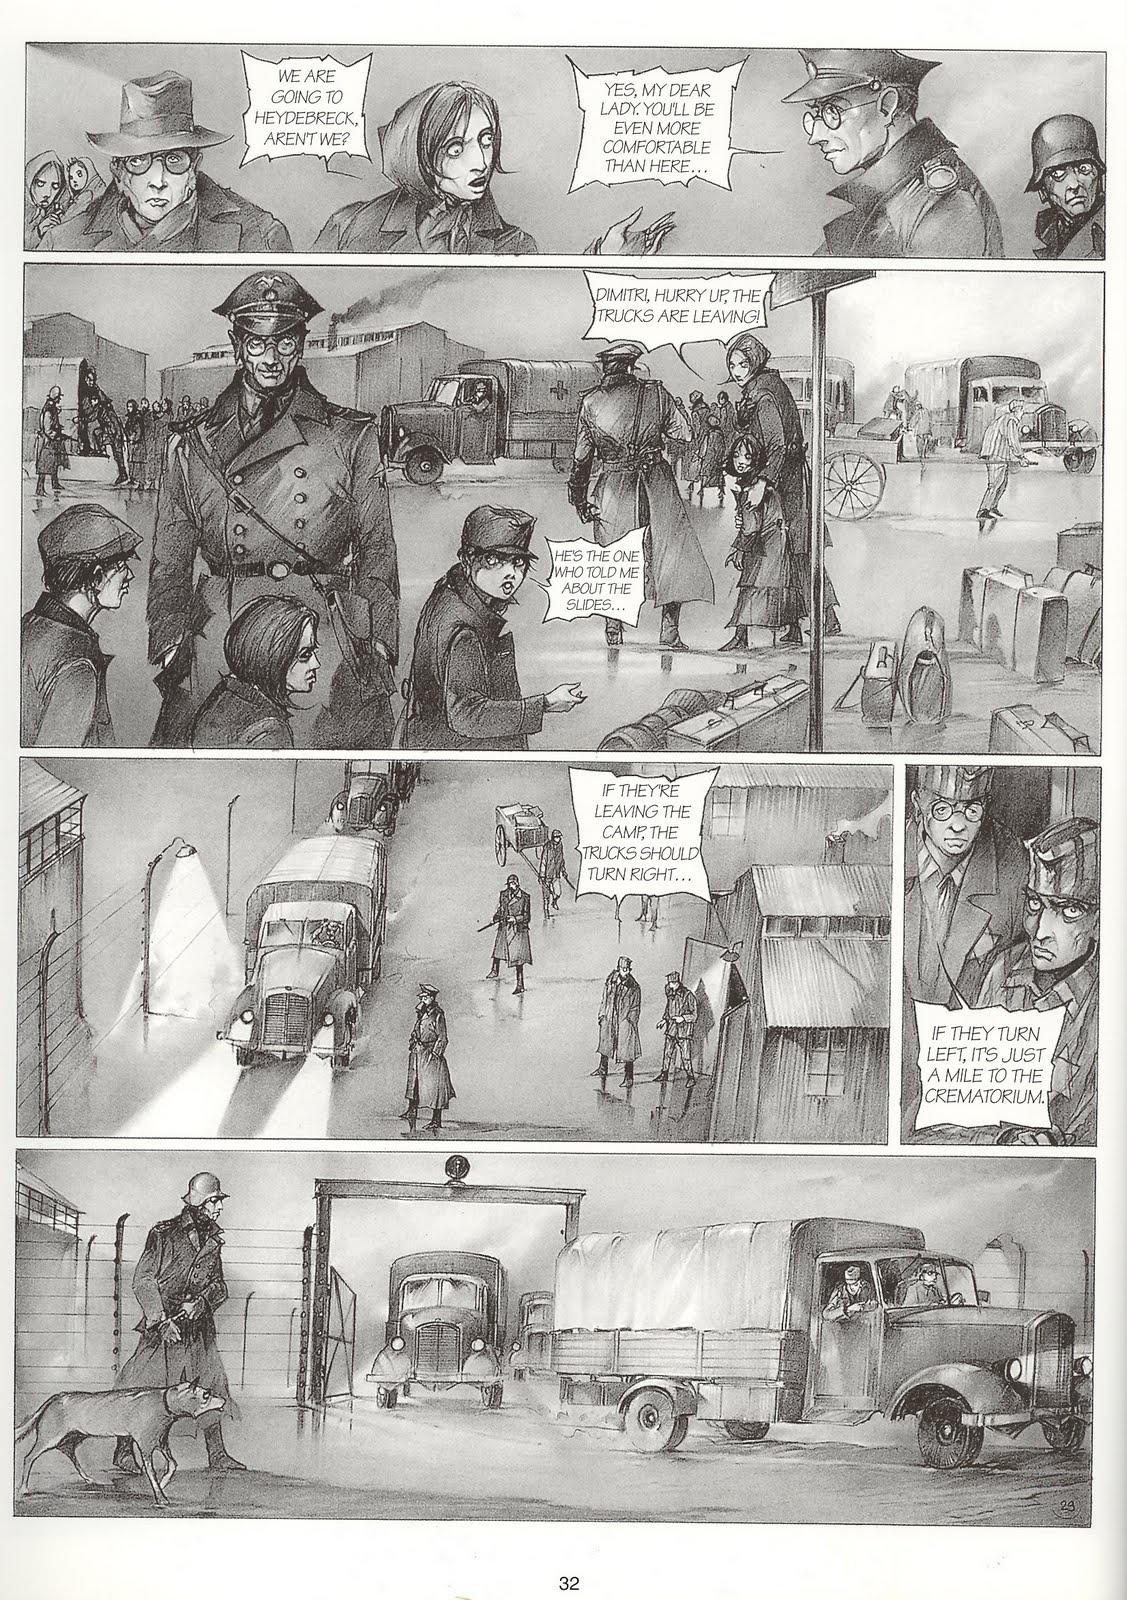 Auschwitz Pascal Croci graphic novel review